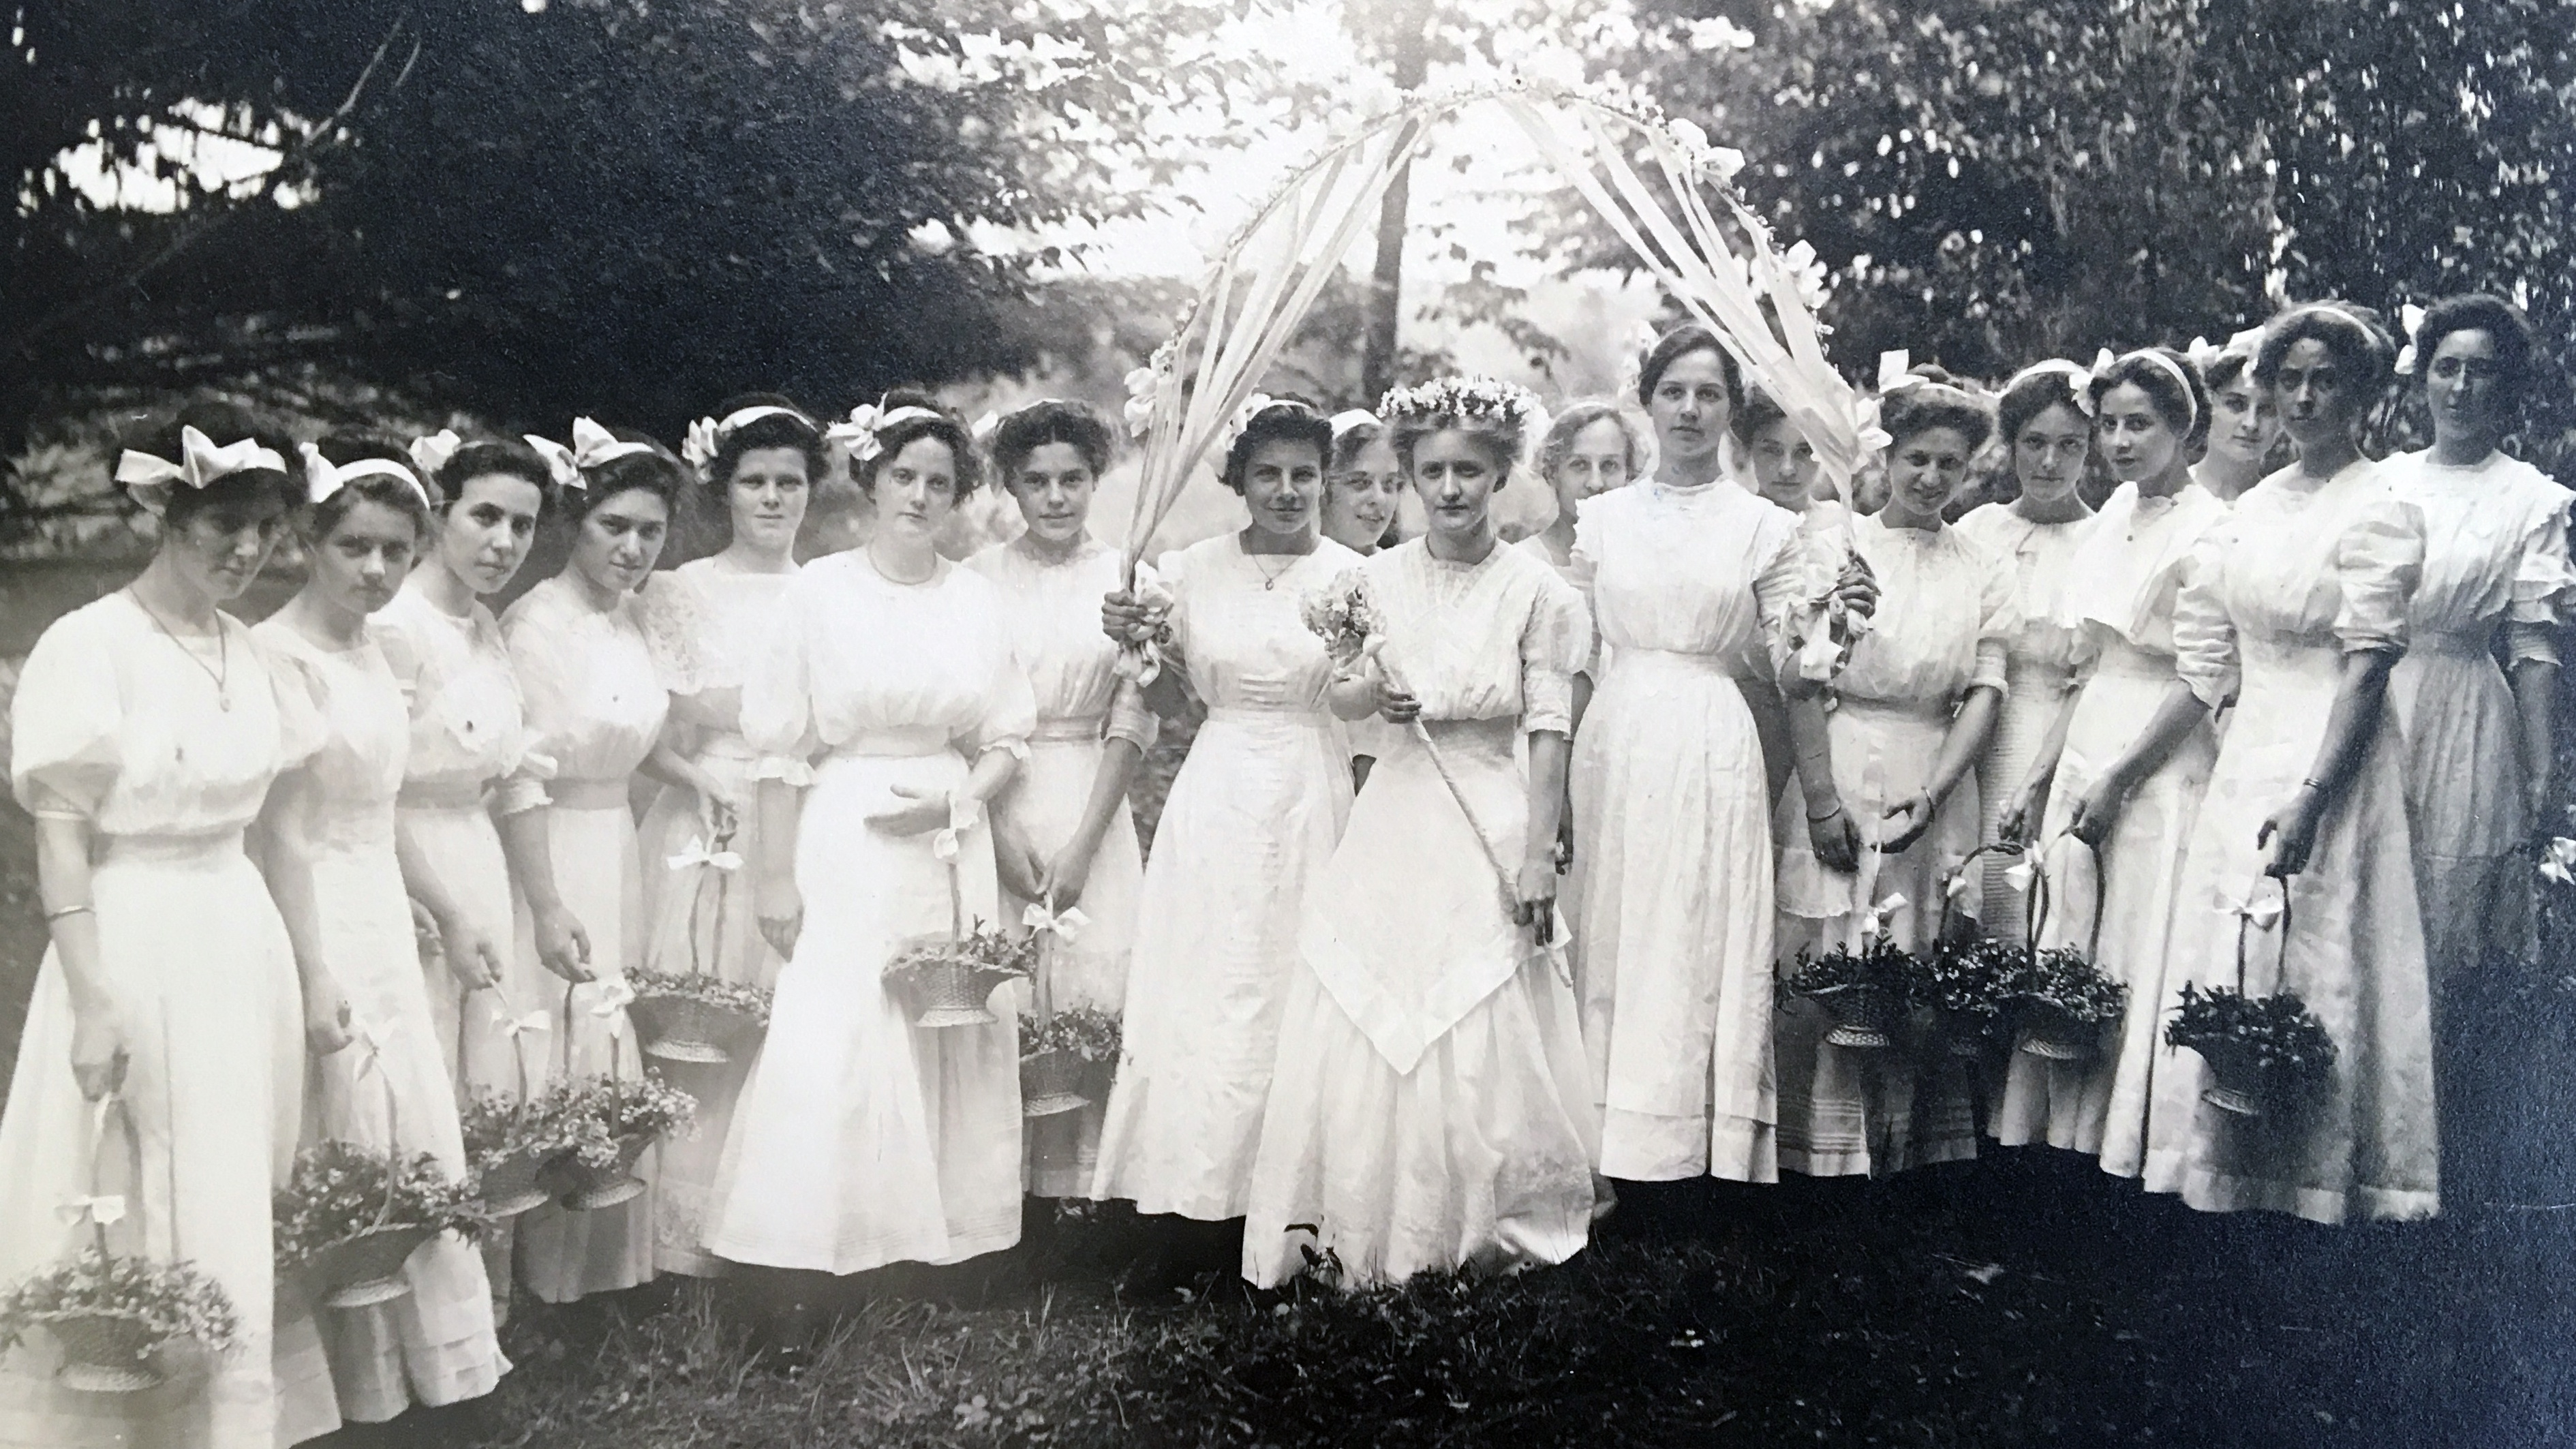 May Day queen and court, 1910